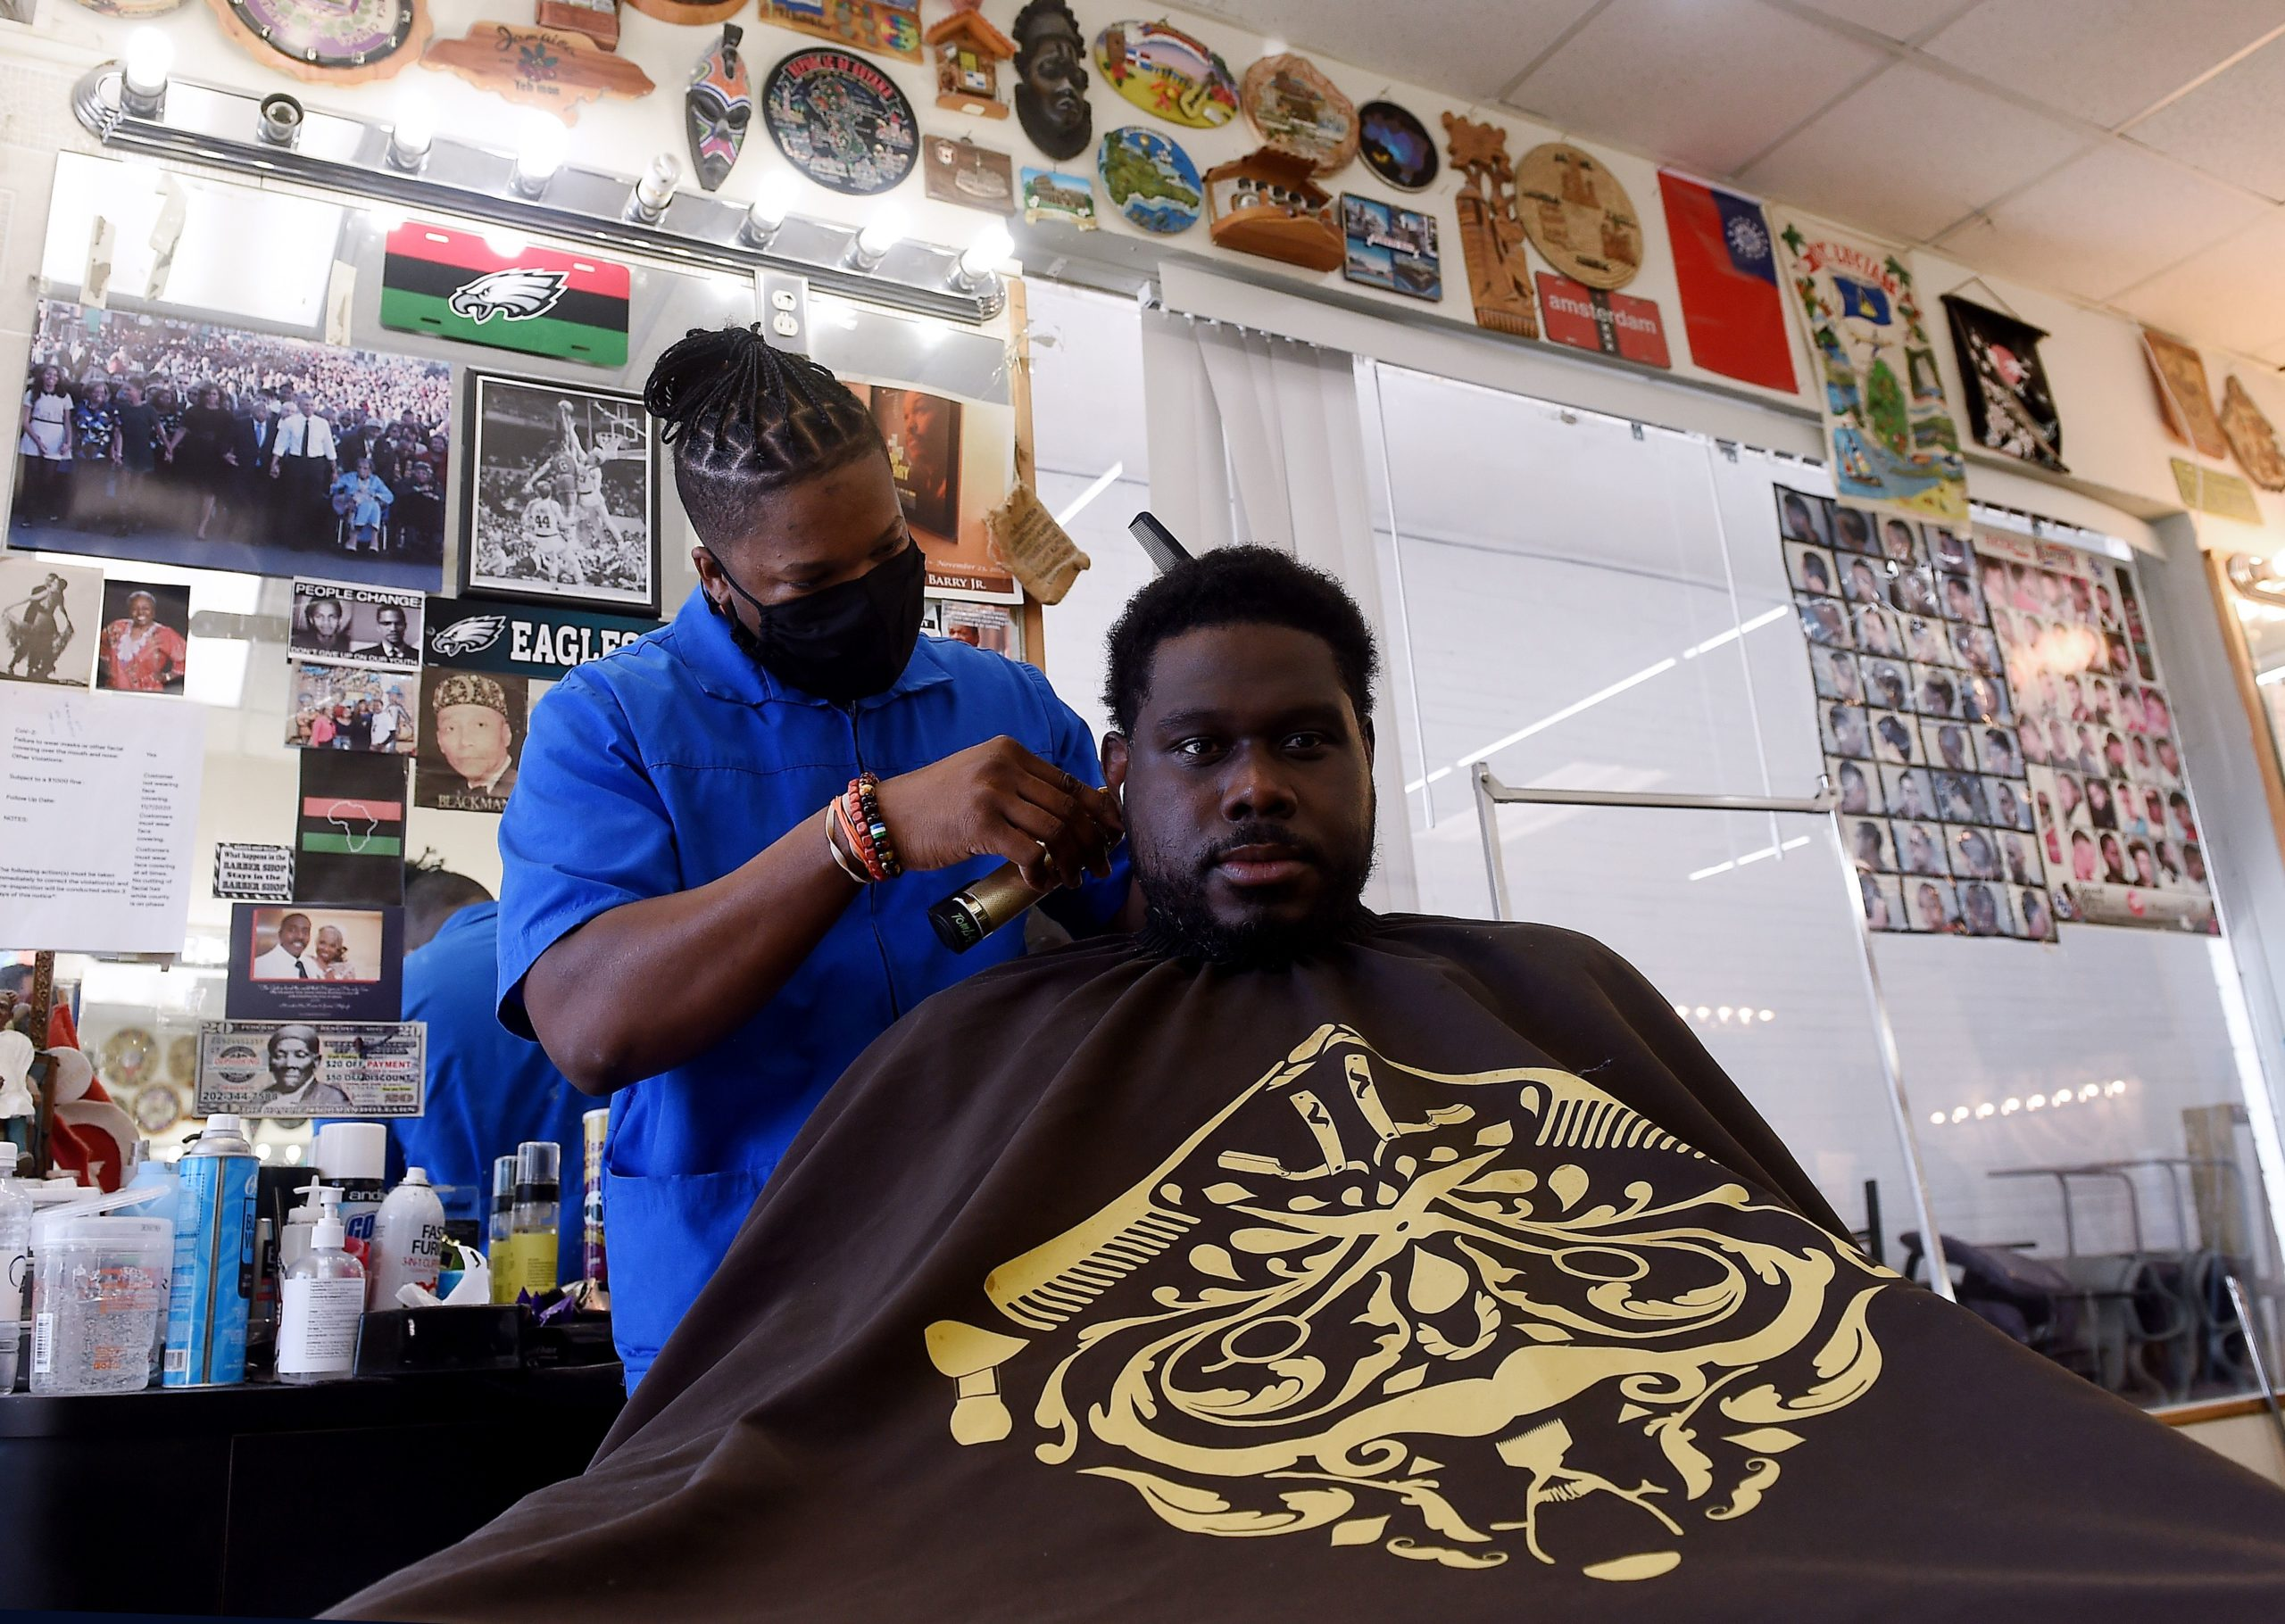 Russel, a barber working for The Shop Hair Spa, cuts the hair of a customer, in Hyattsville, Maryland on February 25, 2021. - Barber Mike Brown carefully guides his trimmer as he fights misconceptions about Covid-19 among his African-American customers, who face an outsize risk from the virus but are less likely to get vaccinated against it. (OLIVIER DOULIERY/AFP via Getty Images)